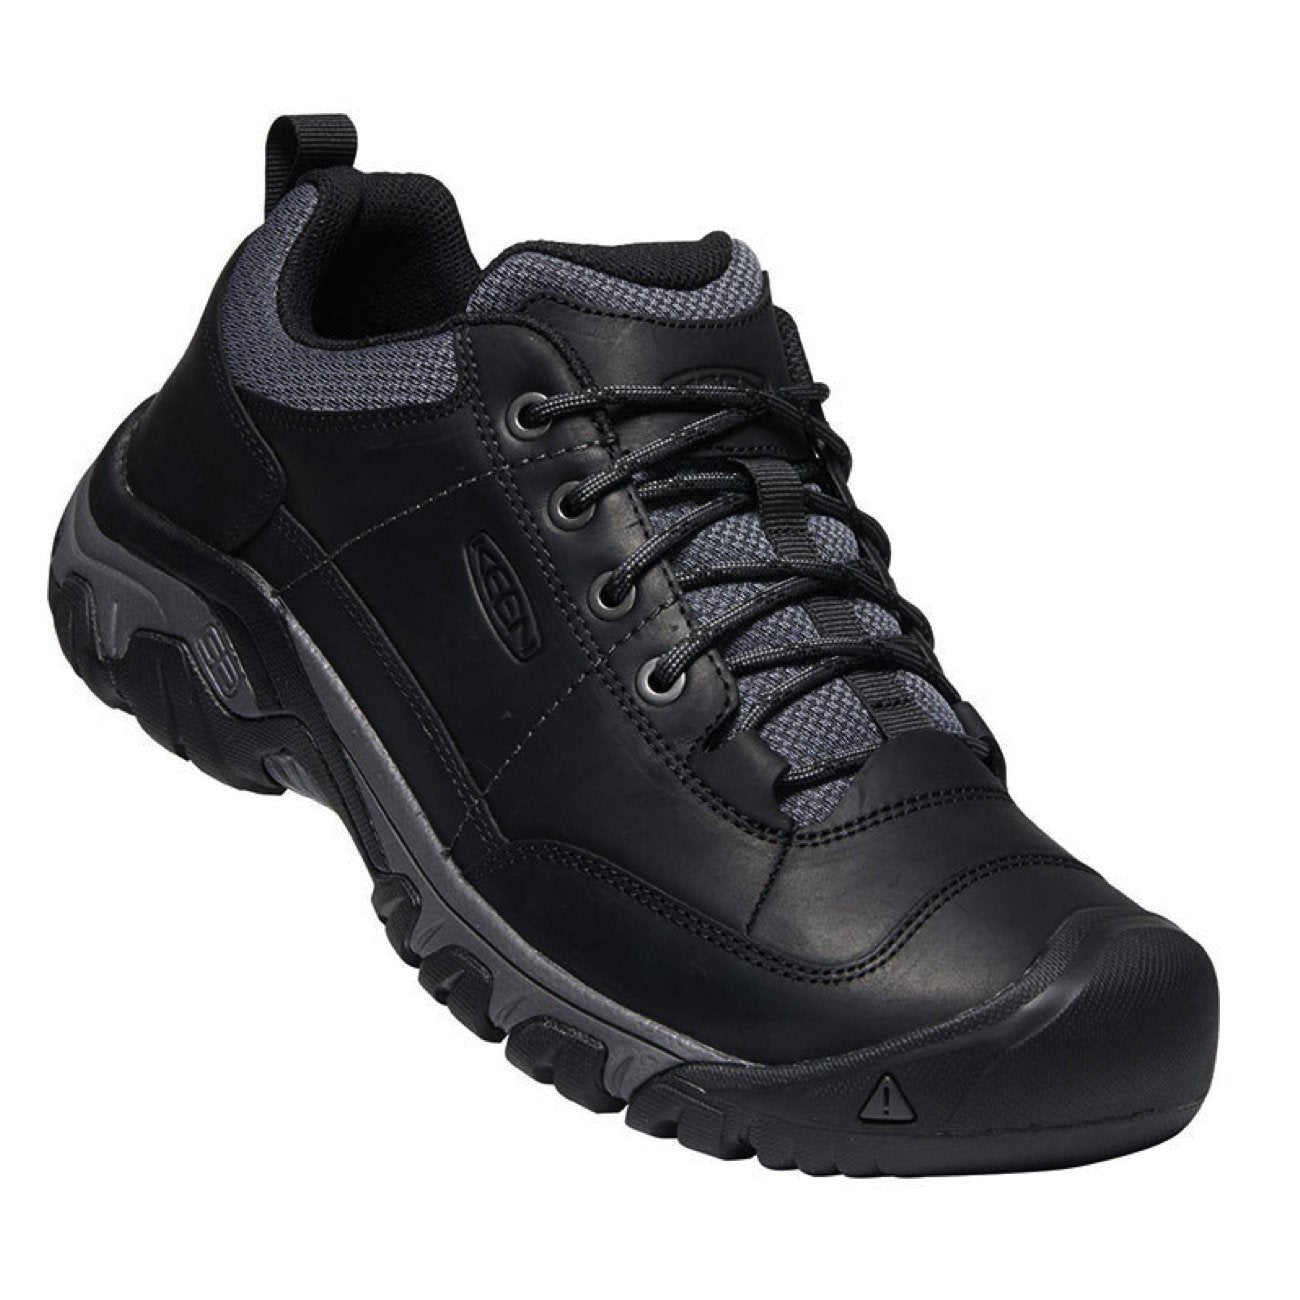 Keen, Targhee III, Oxford, Mens, Black Magnet Shoes Keen Black Magnet 7.5